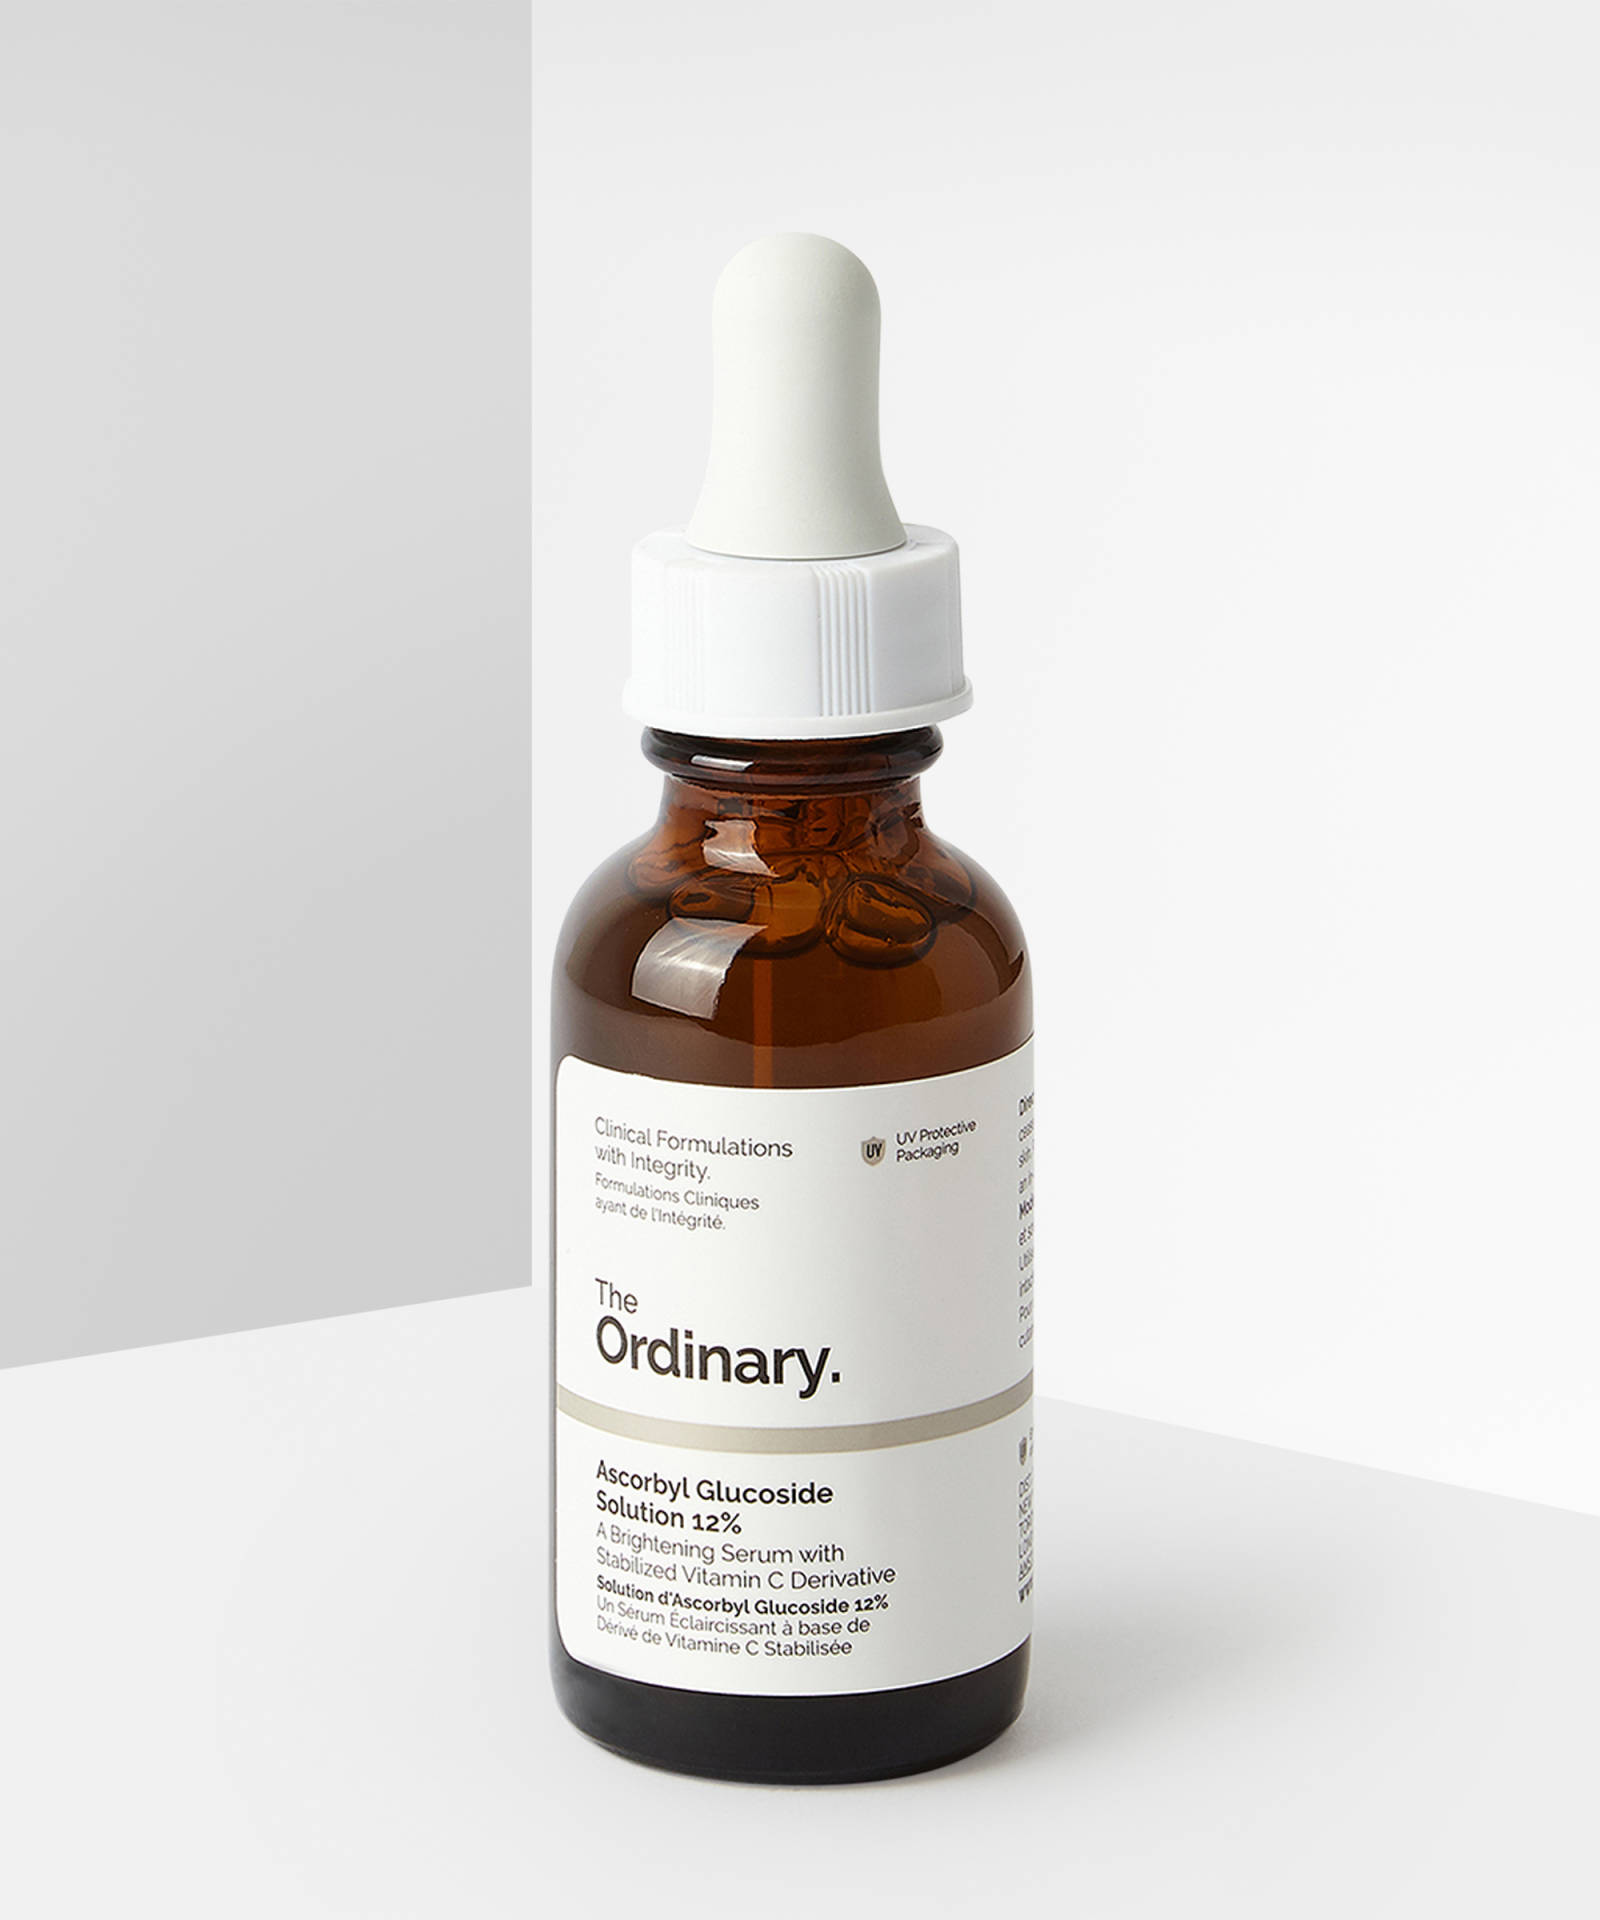 The ordinary - Ascorbyl Glucoside Solution 12%-BEAUTYMAGIC